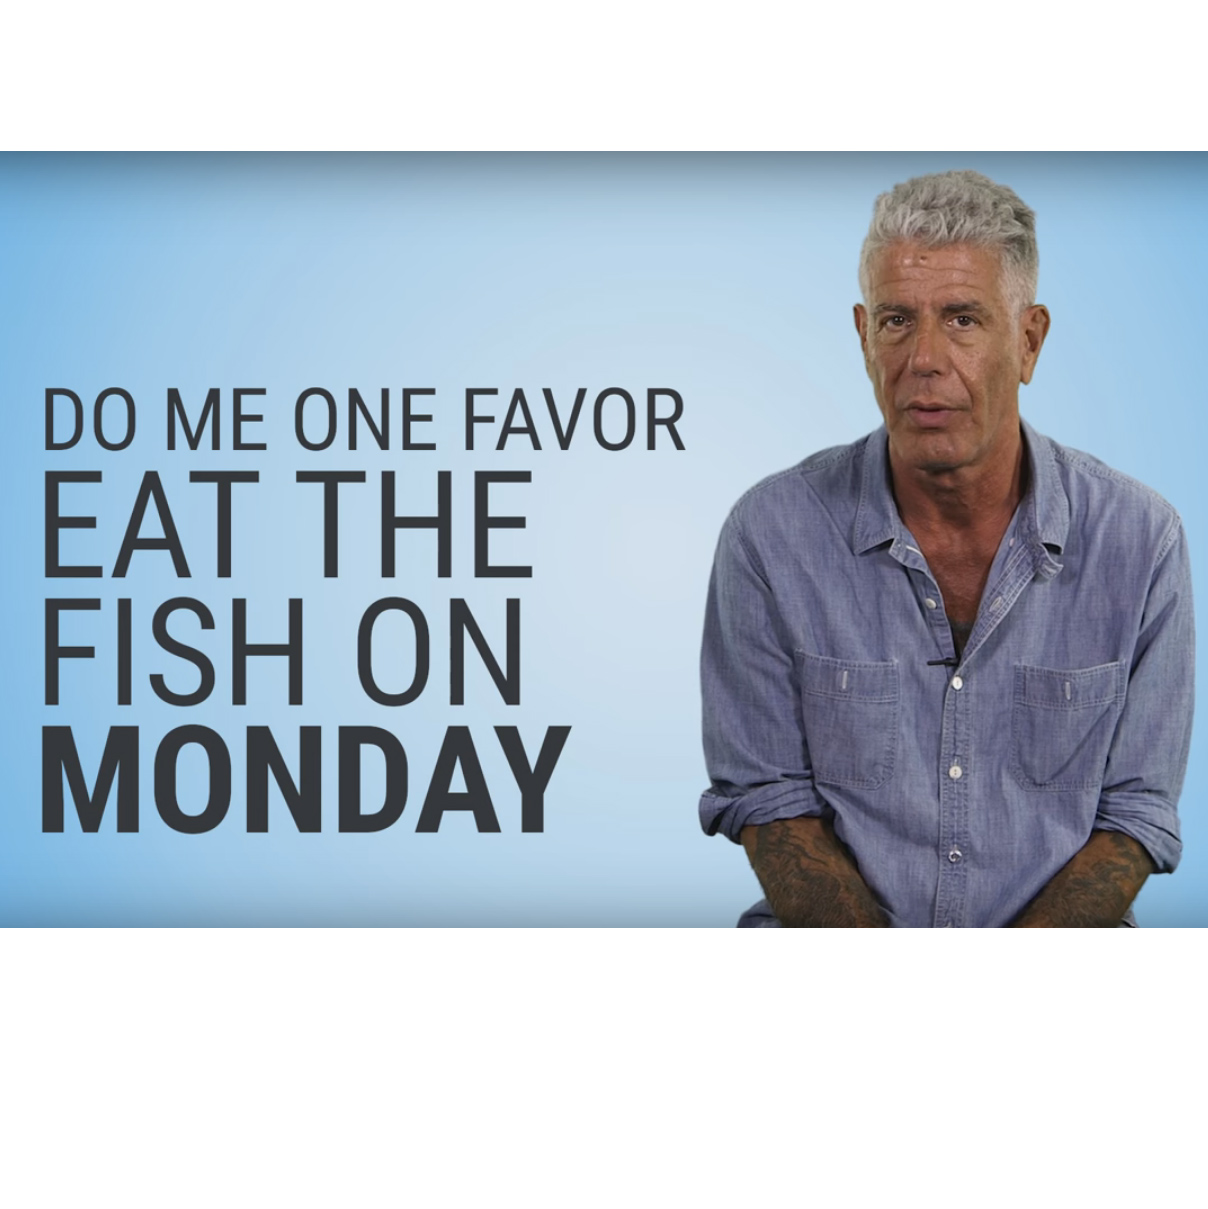 bourdain-fish-monday-fwx